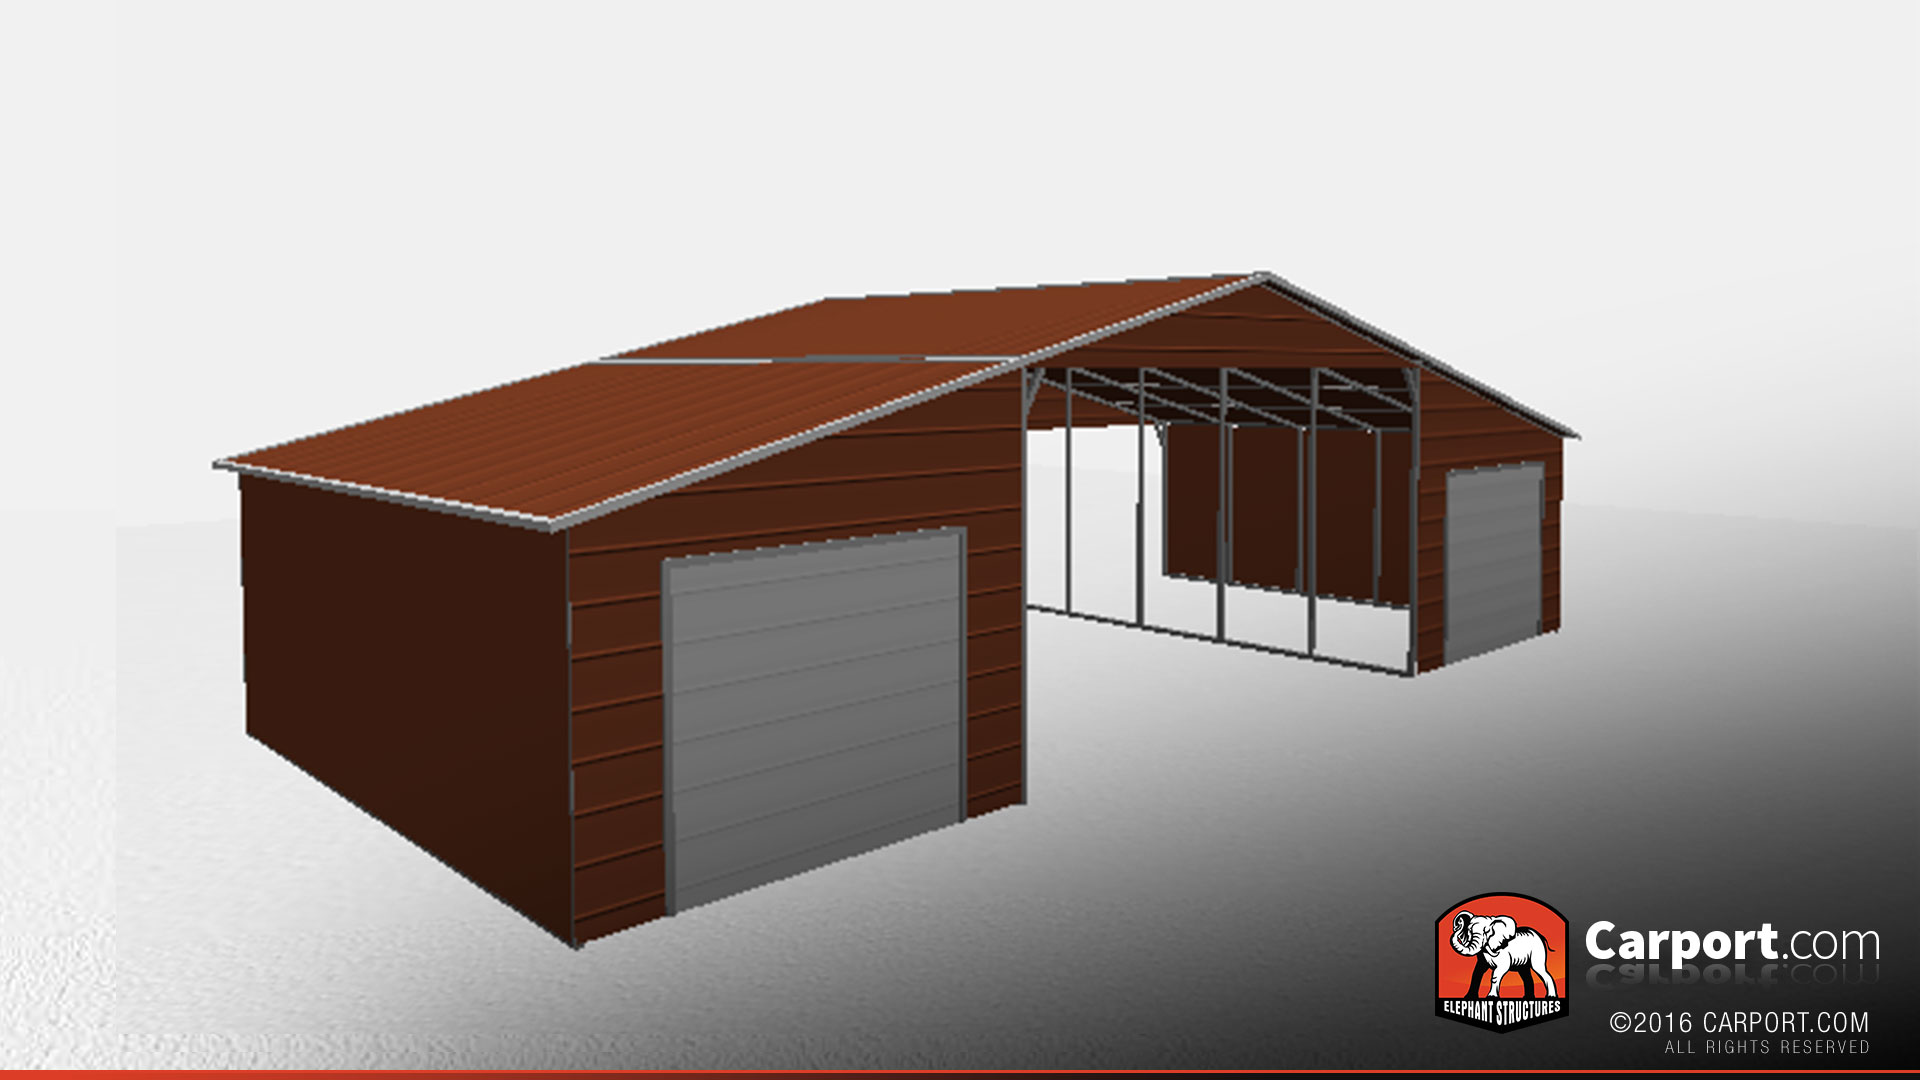 42 39 x 21 39 x 12 39 valley style metal barn shop metal for Barn style metal buildings